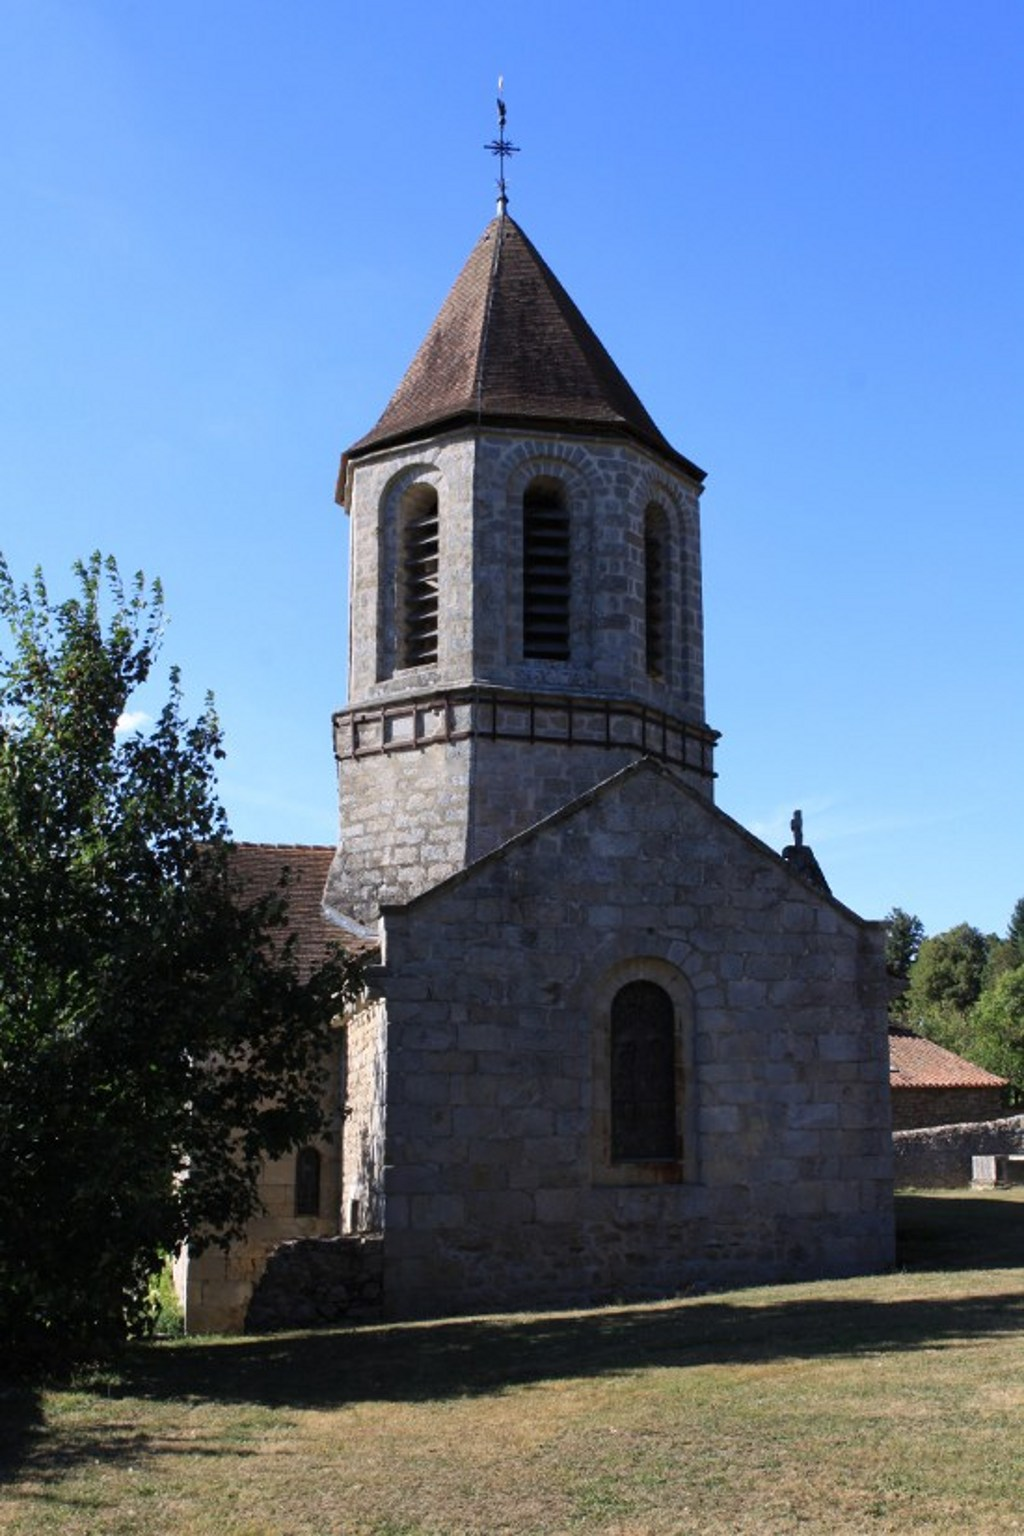 Old church, French Heritage monument to St hilaire les places.